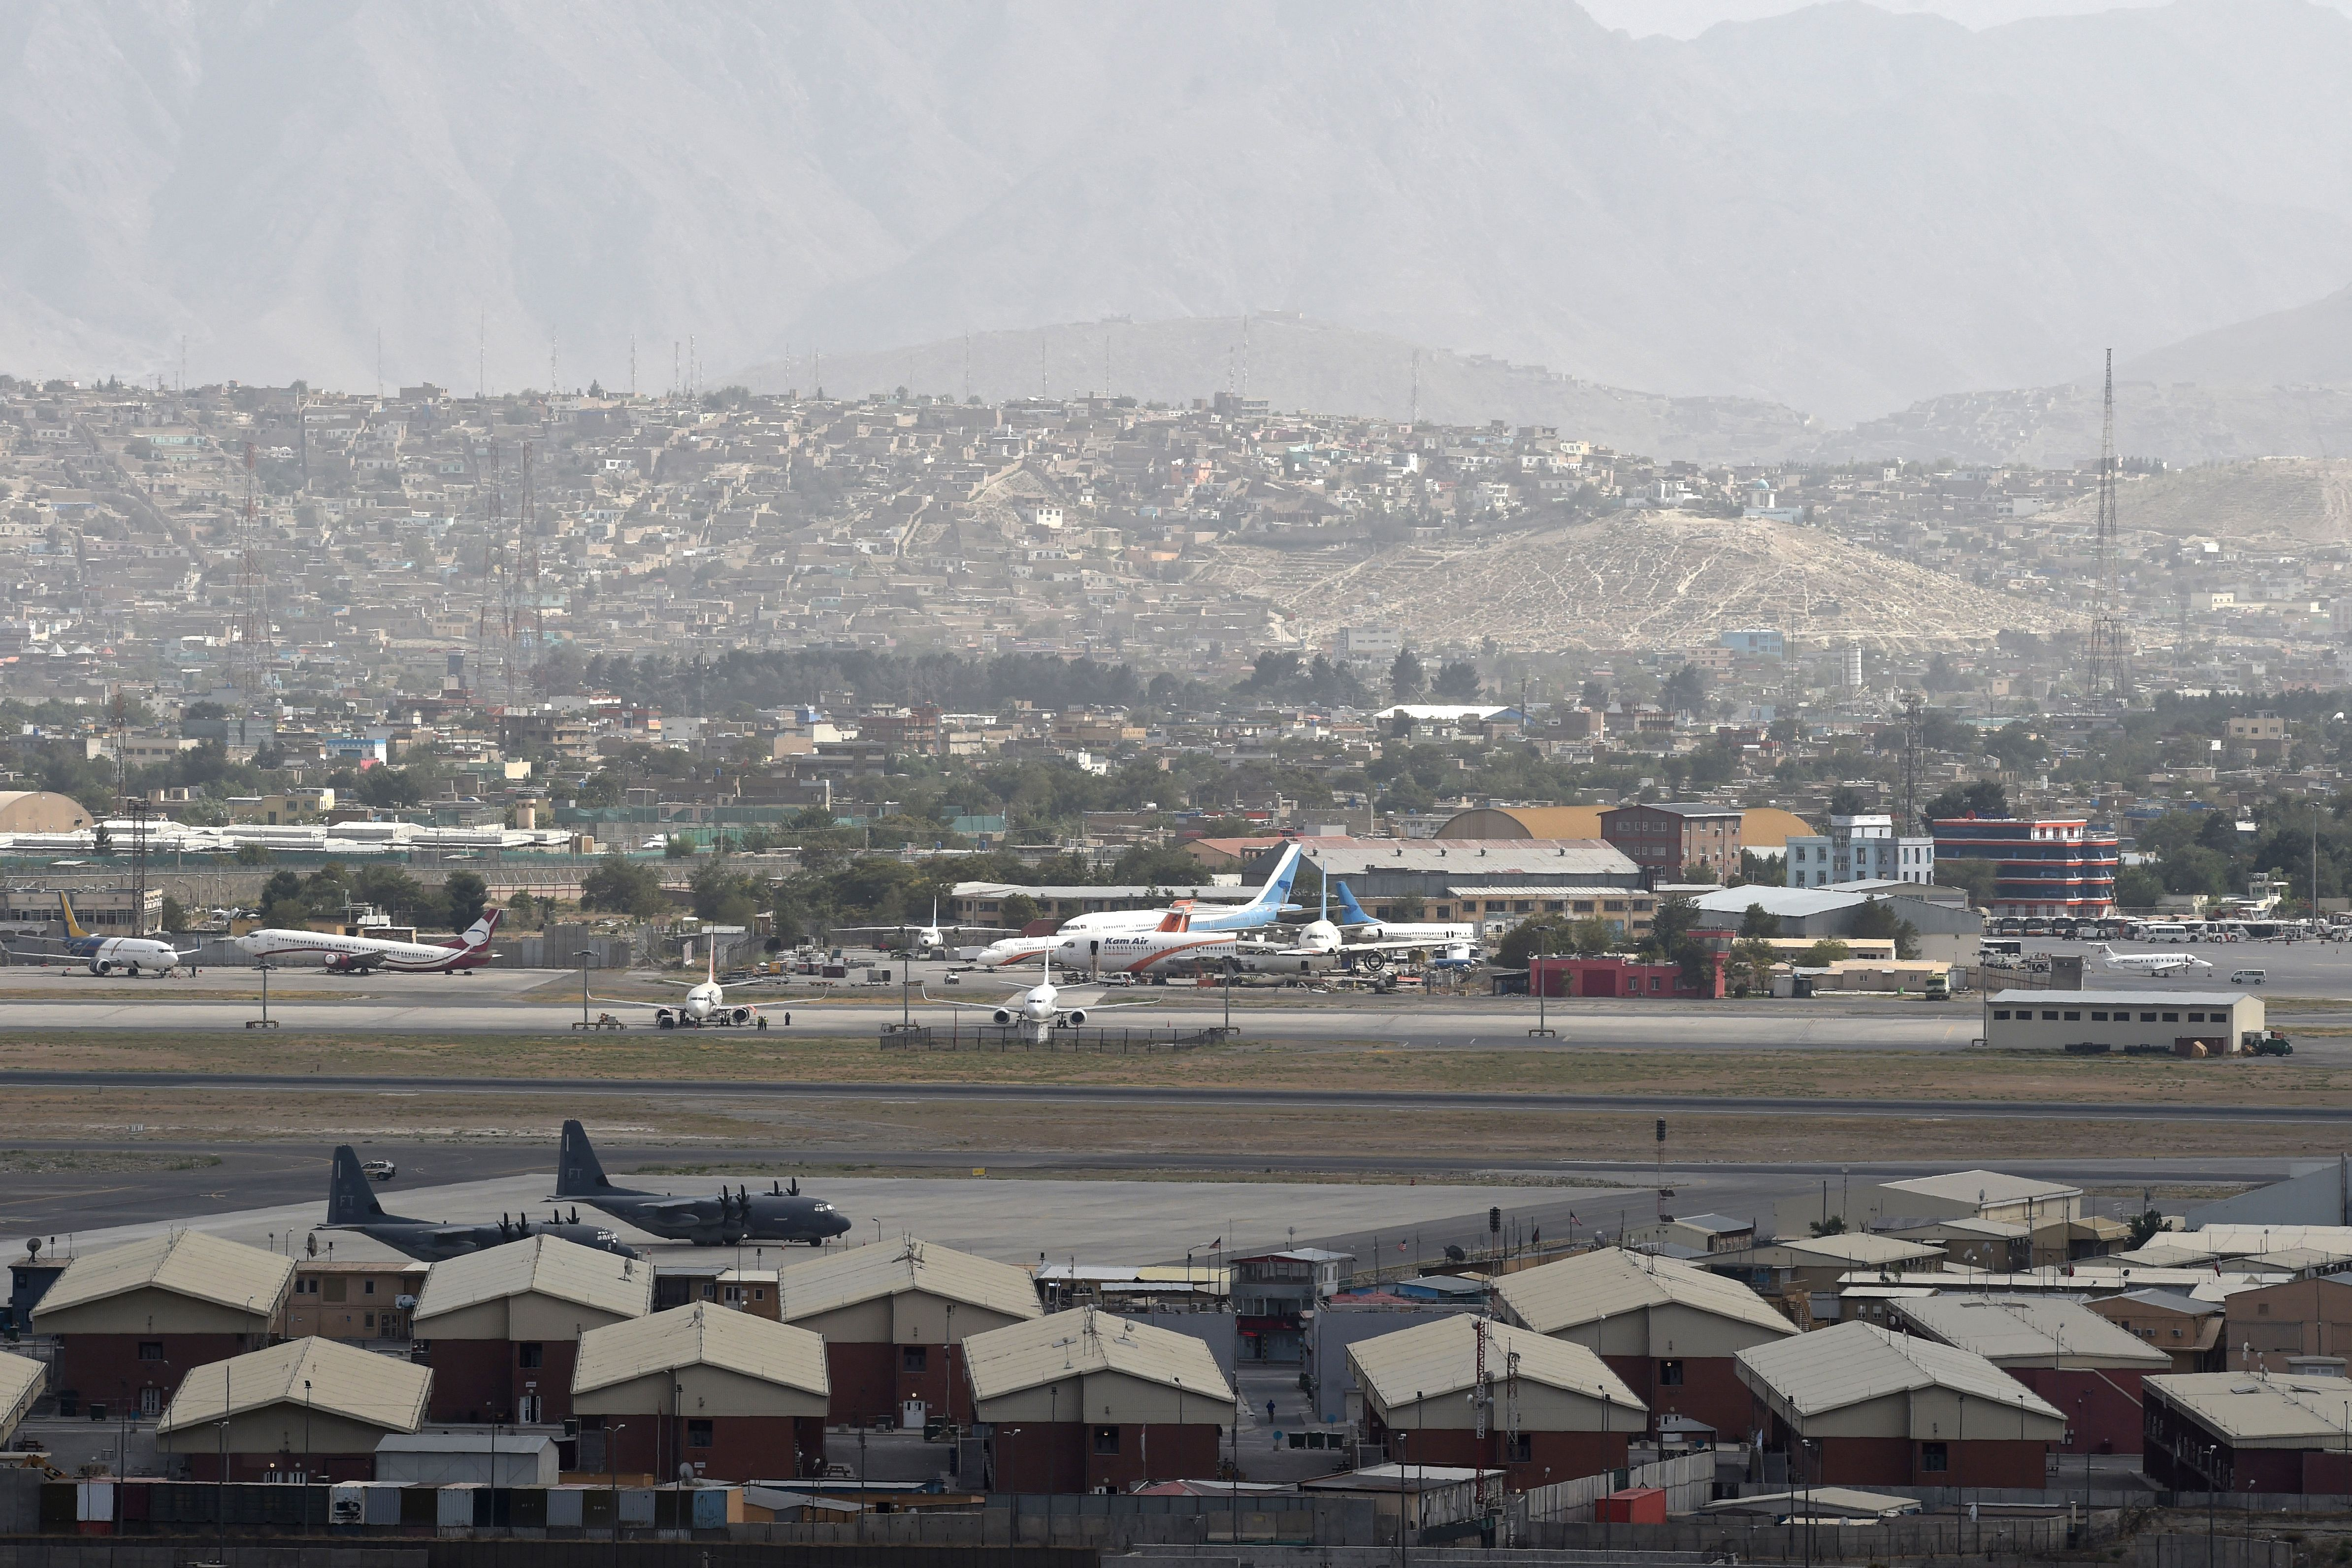 This picture taken on Saturday shows planes on the tarmac of the airport in Kabul.